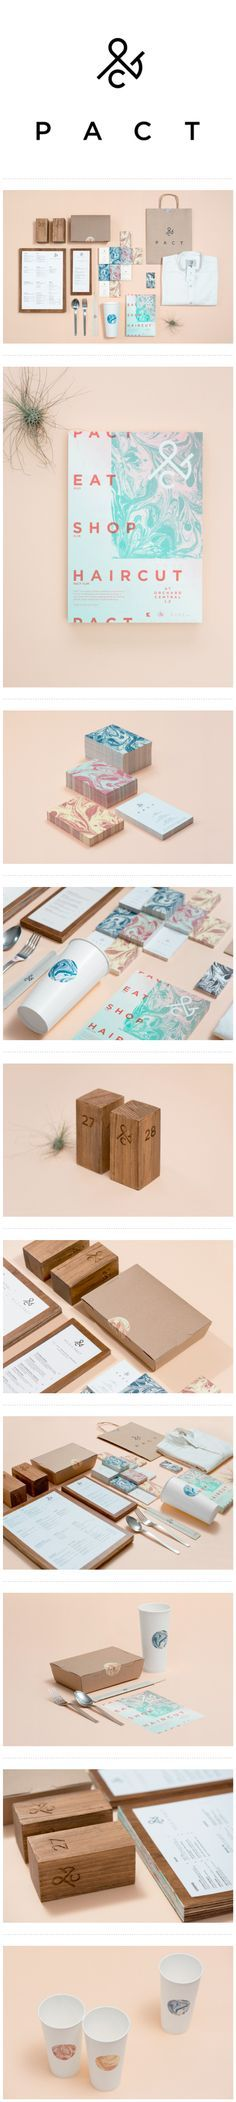 Pact #identity #packaging #branding #marketing curated by Packaging Diva PD